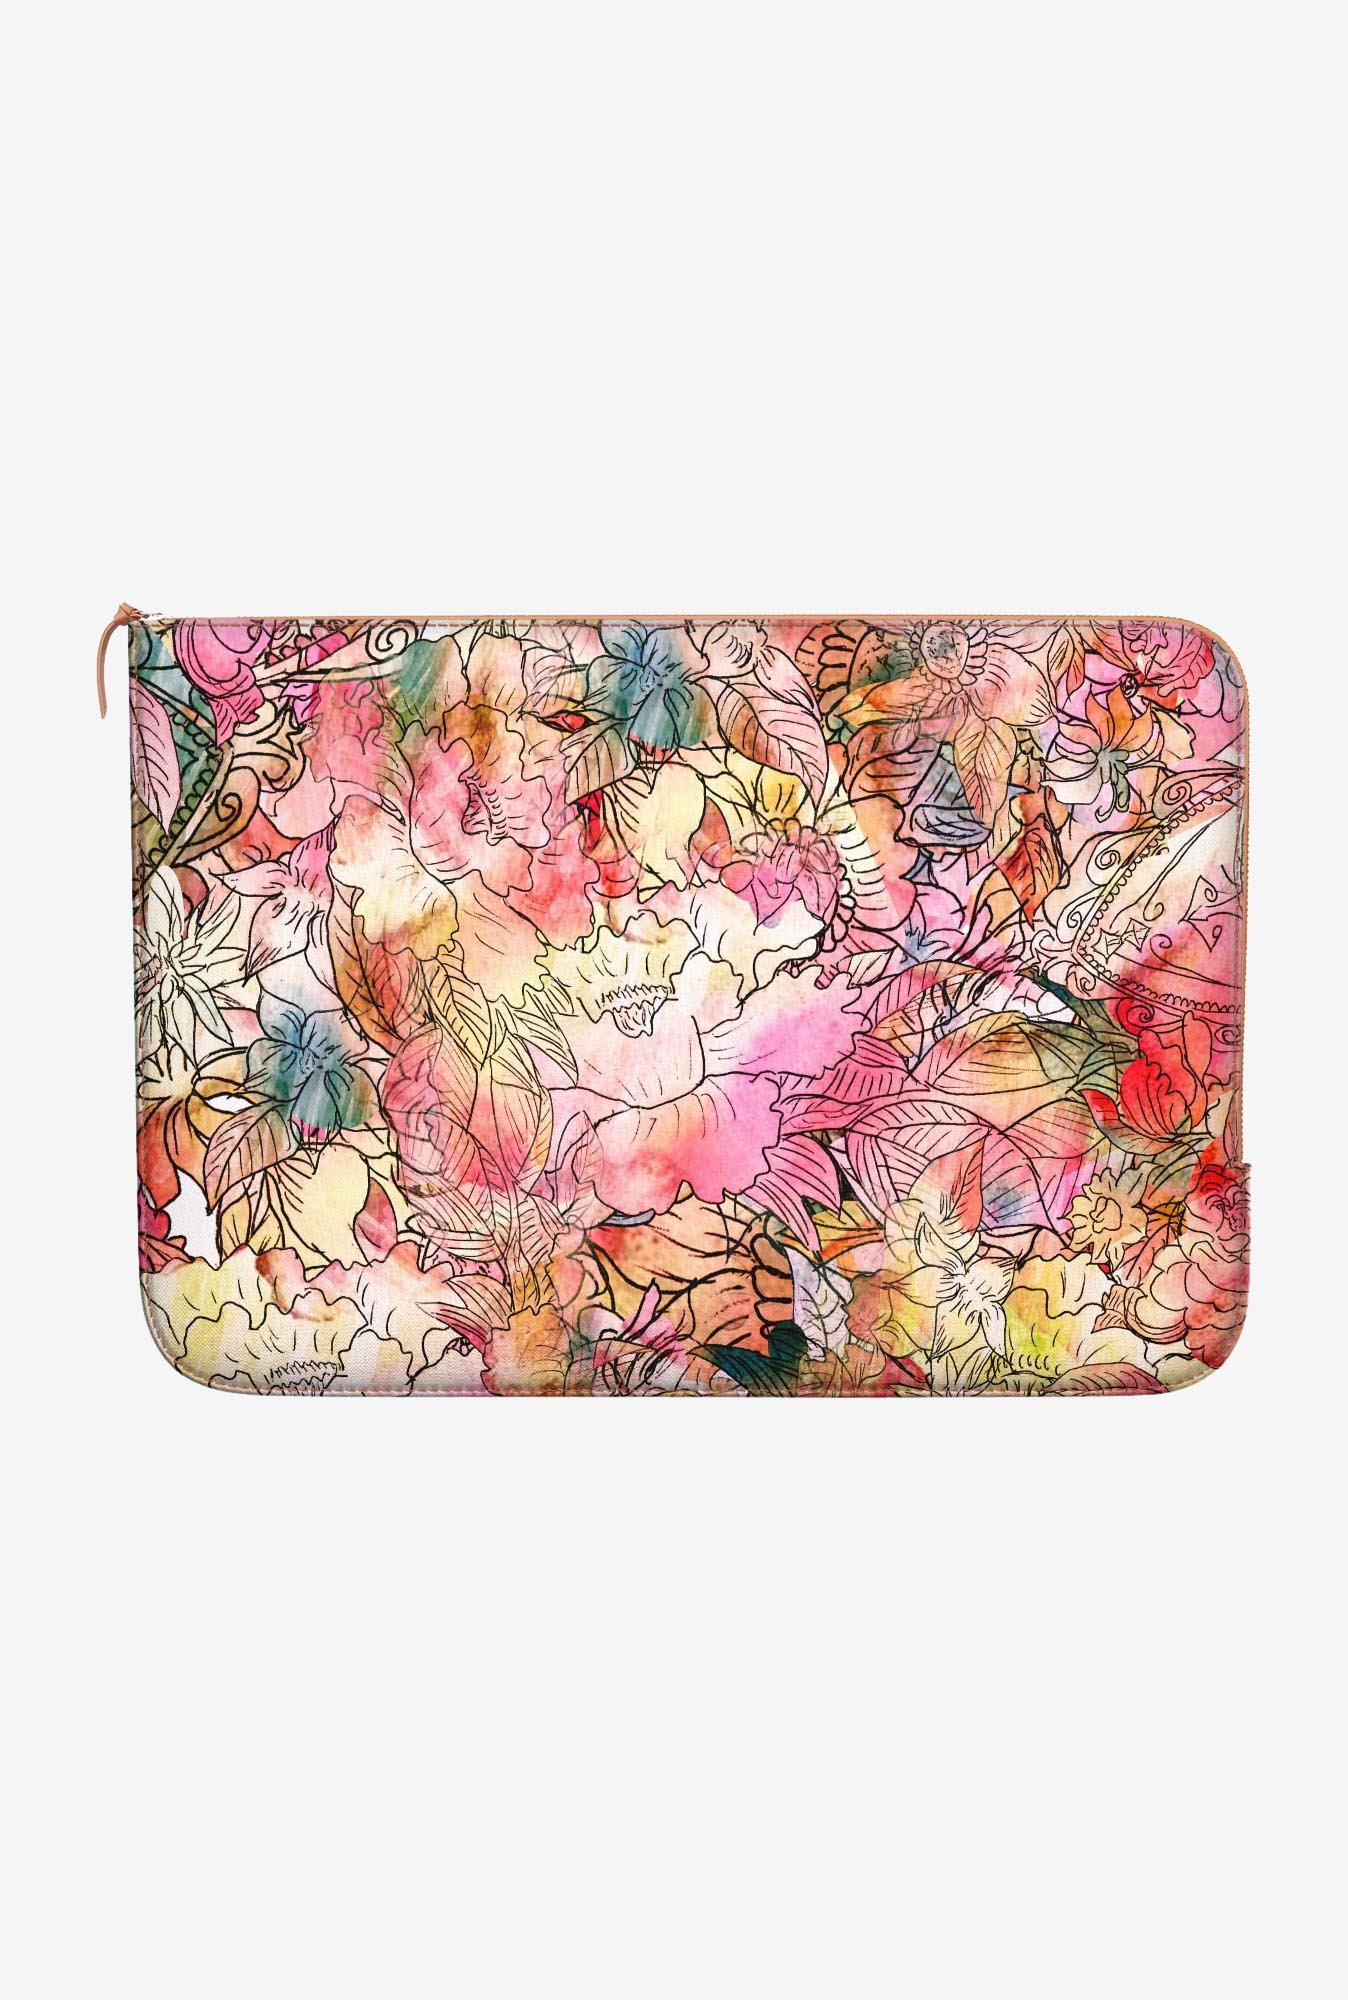 DailyObjects Colorful Floral MacBook Air 11 Zippered Sleeve